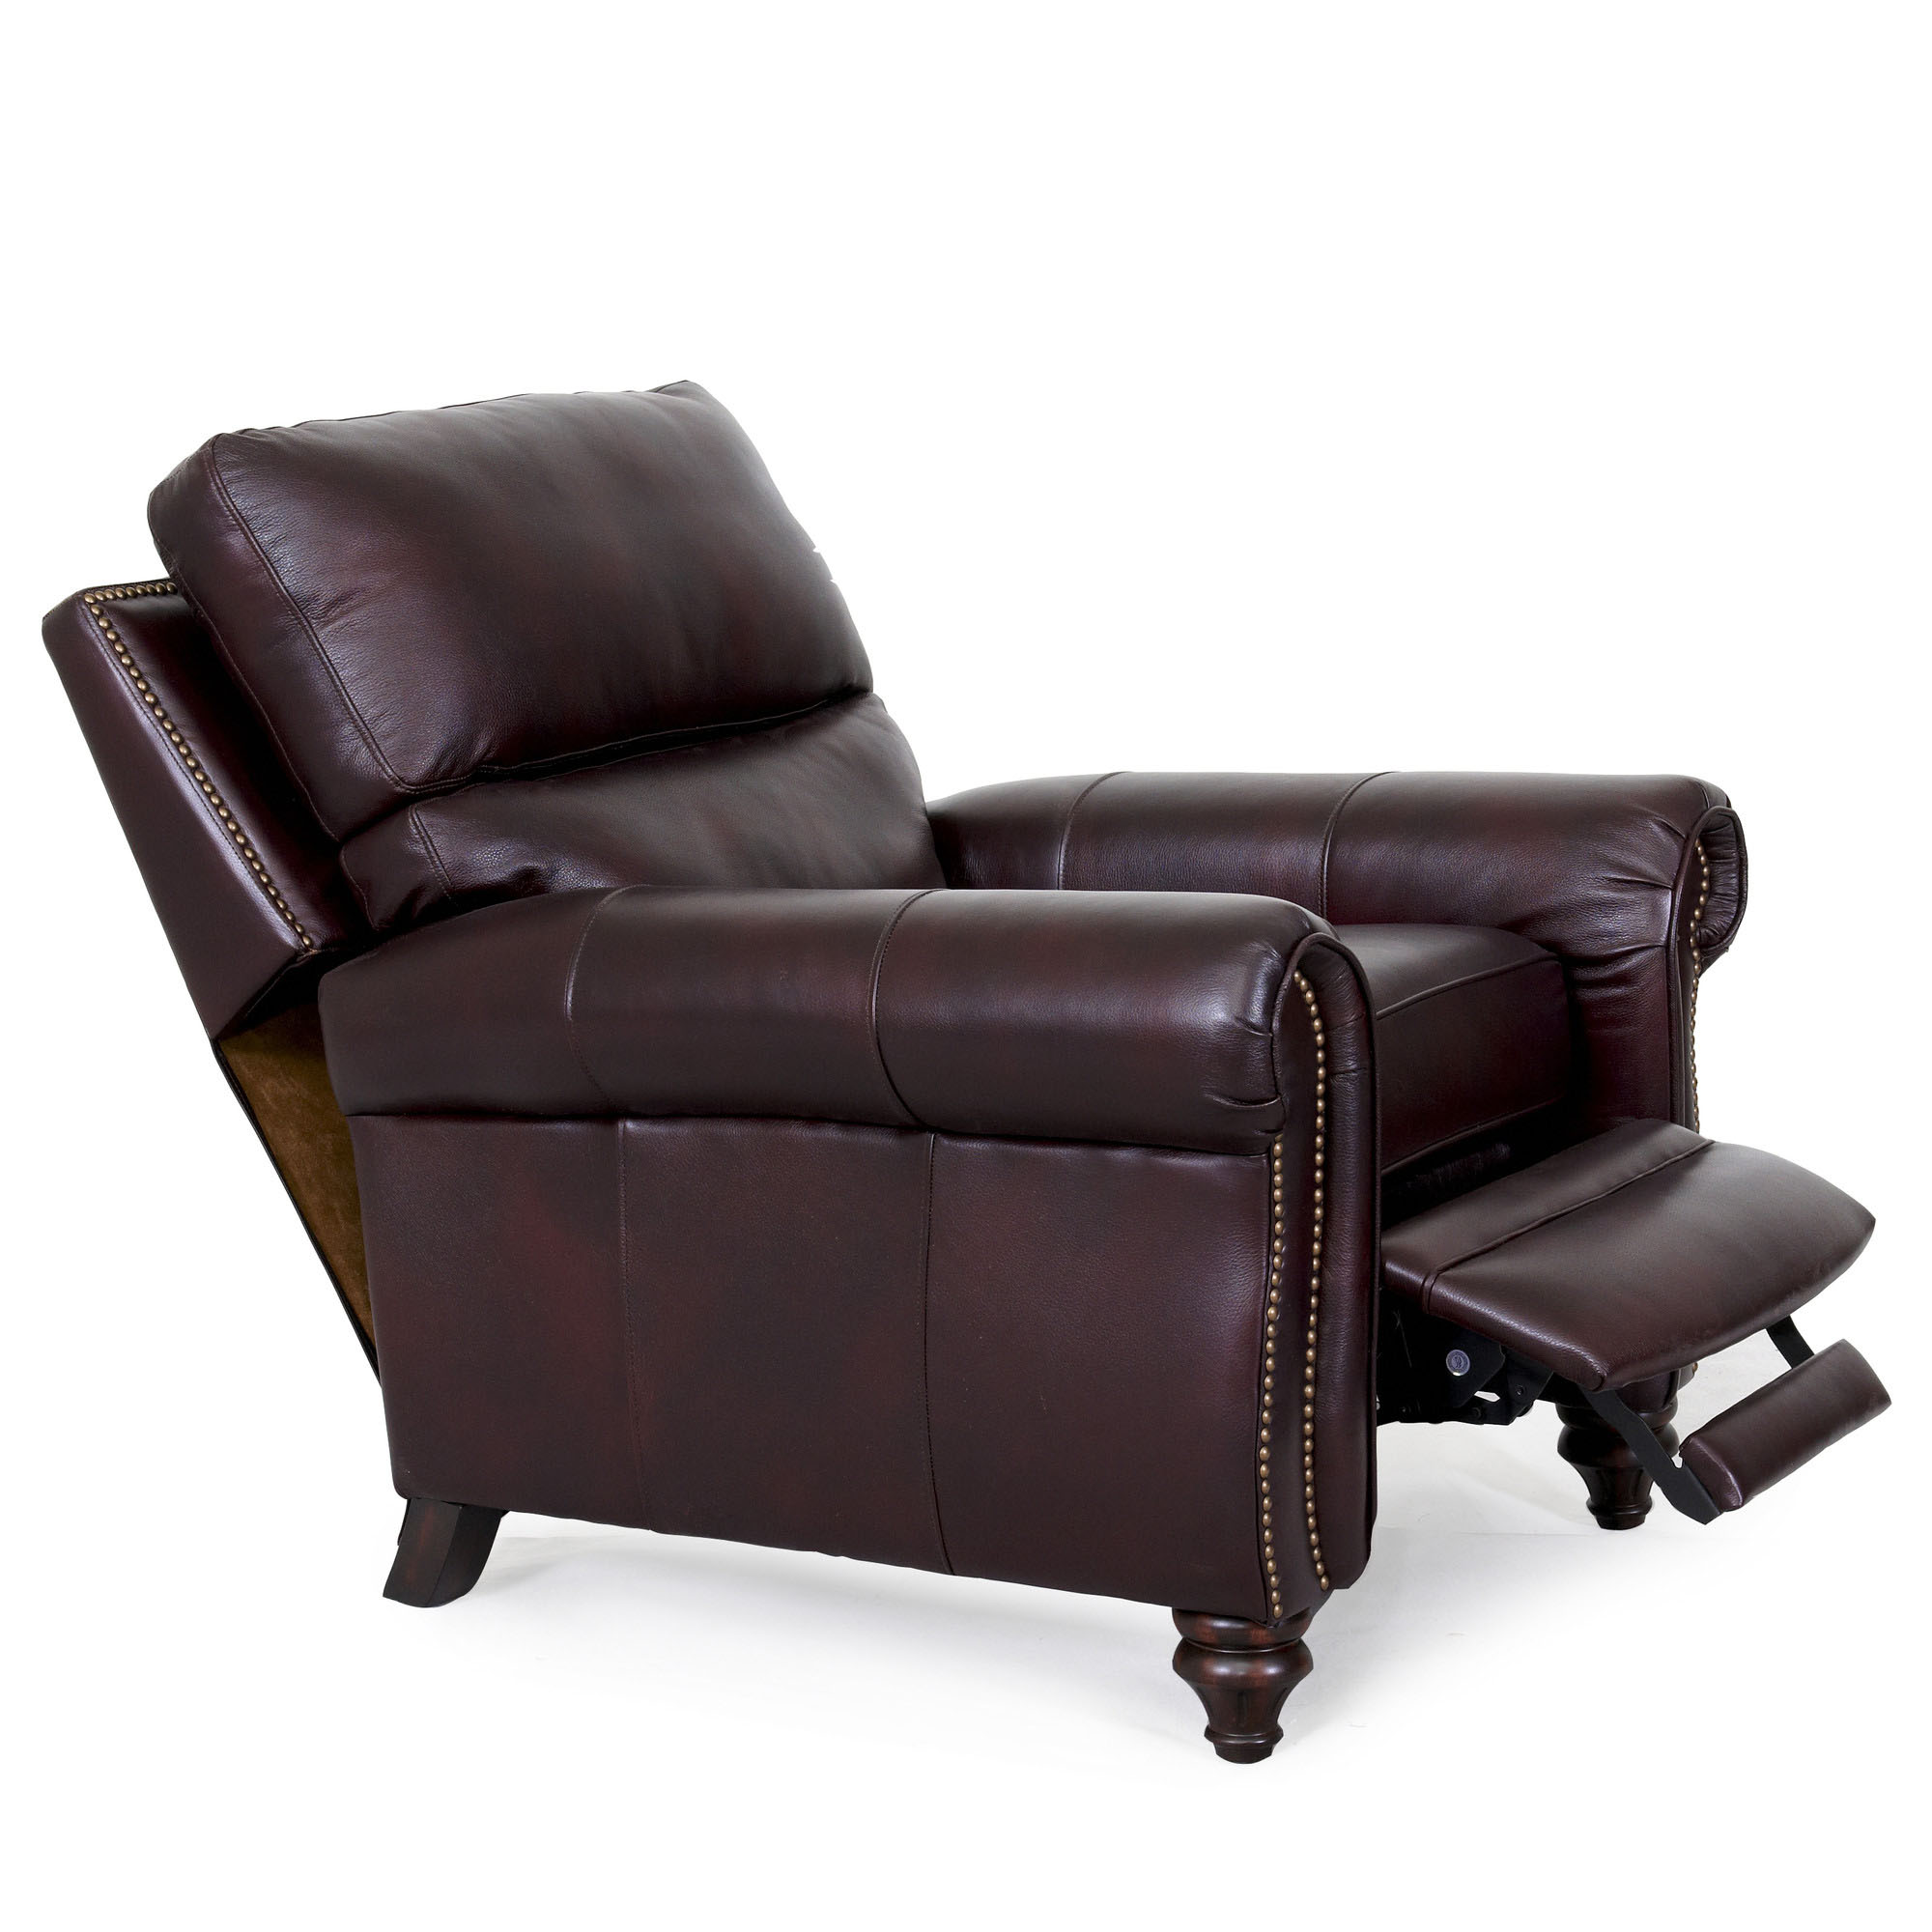 Barcalounger Dalton II Recliner Chair - Leather Recliner Chair ...